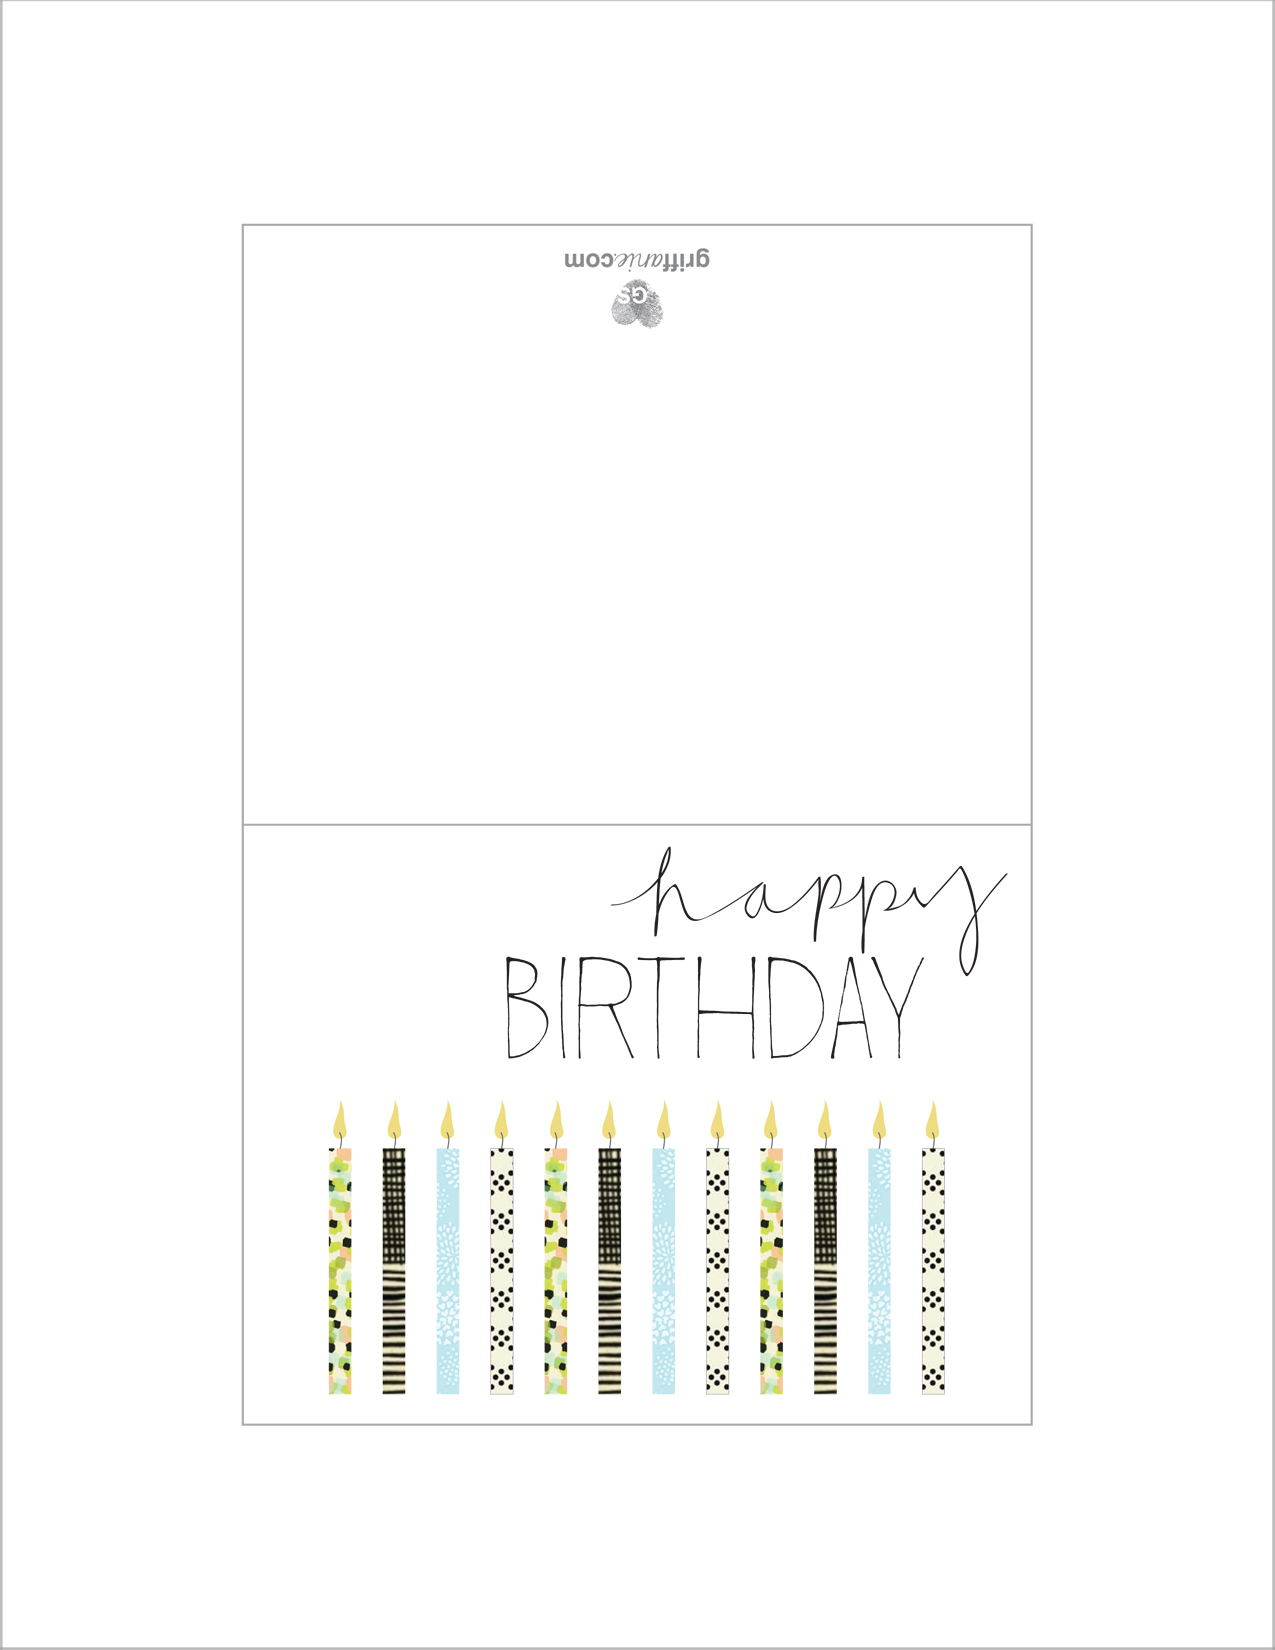 9 Best Images of Printable Folding Birthday Cards To Color ...